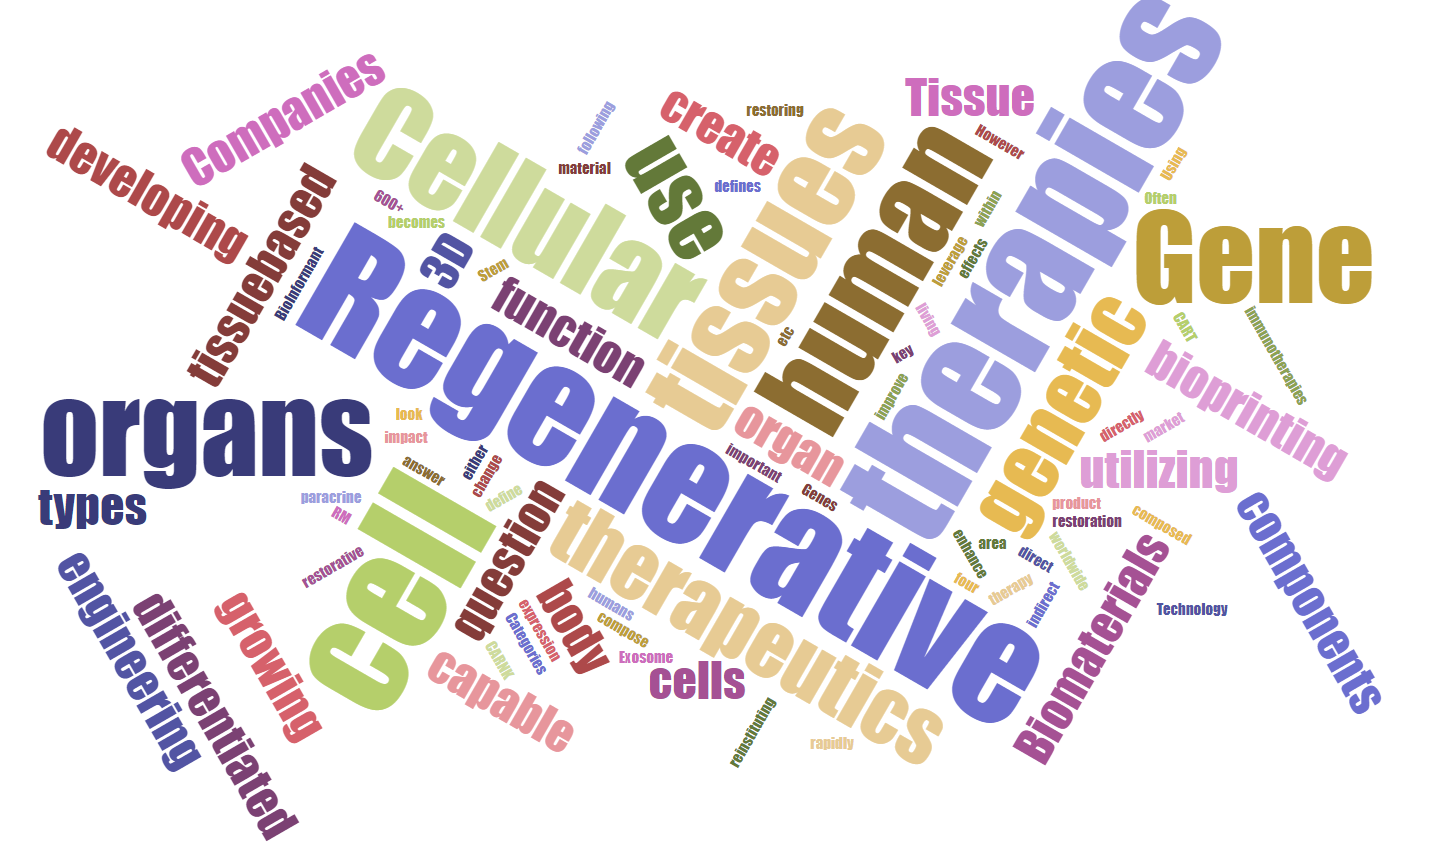 Advantages of regenerative medicine